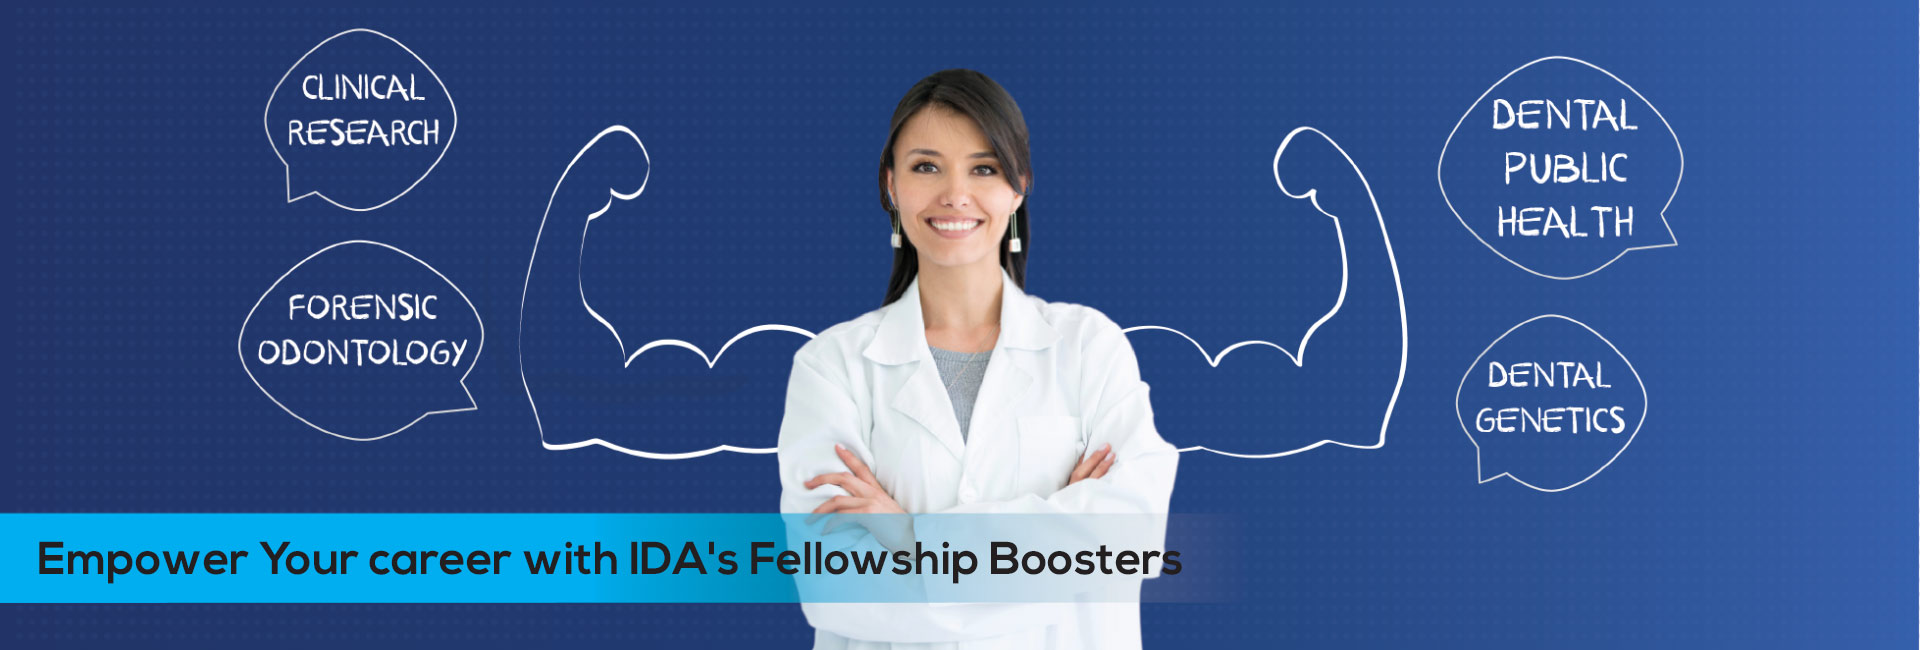 IDA Fellowship